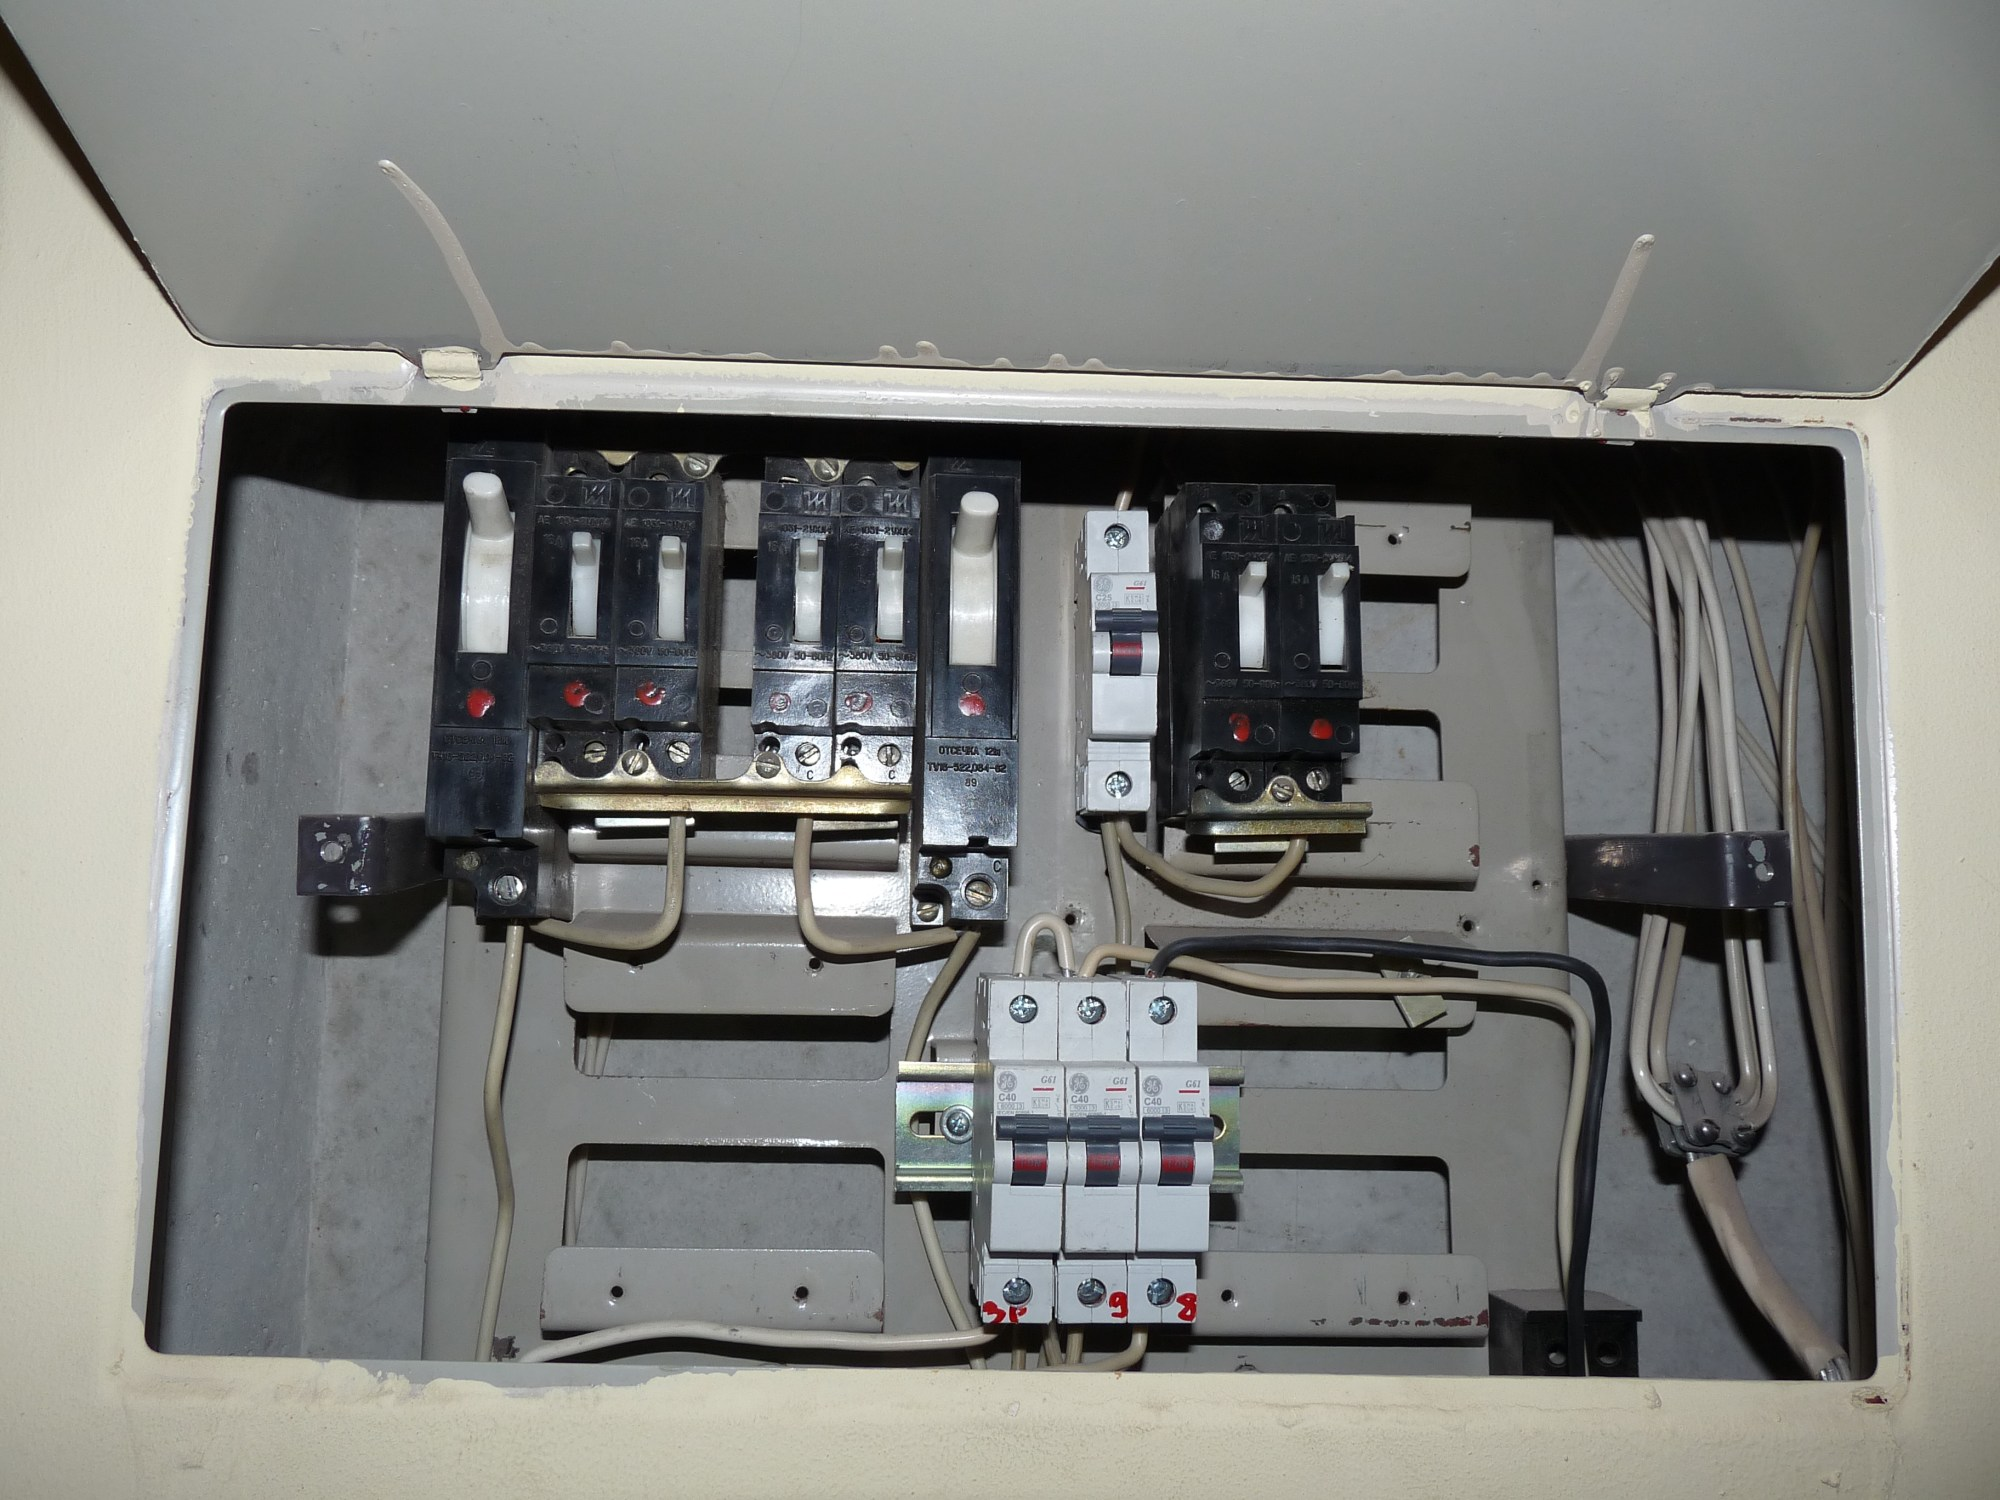 hight resolution of open fuse box house simple wiring schema house fuse box left swing door house fuse box repair